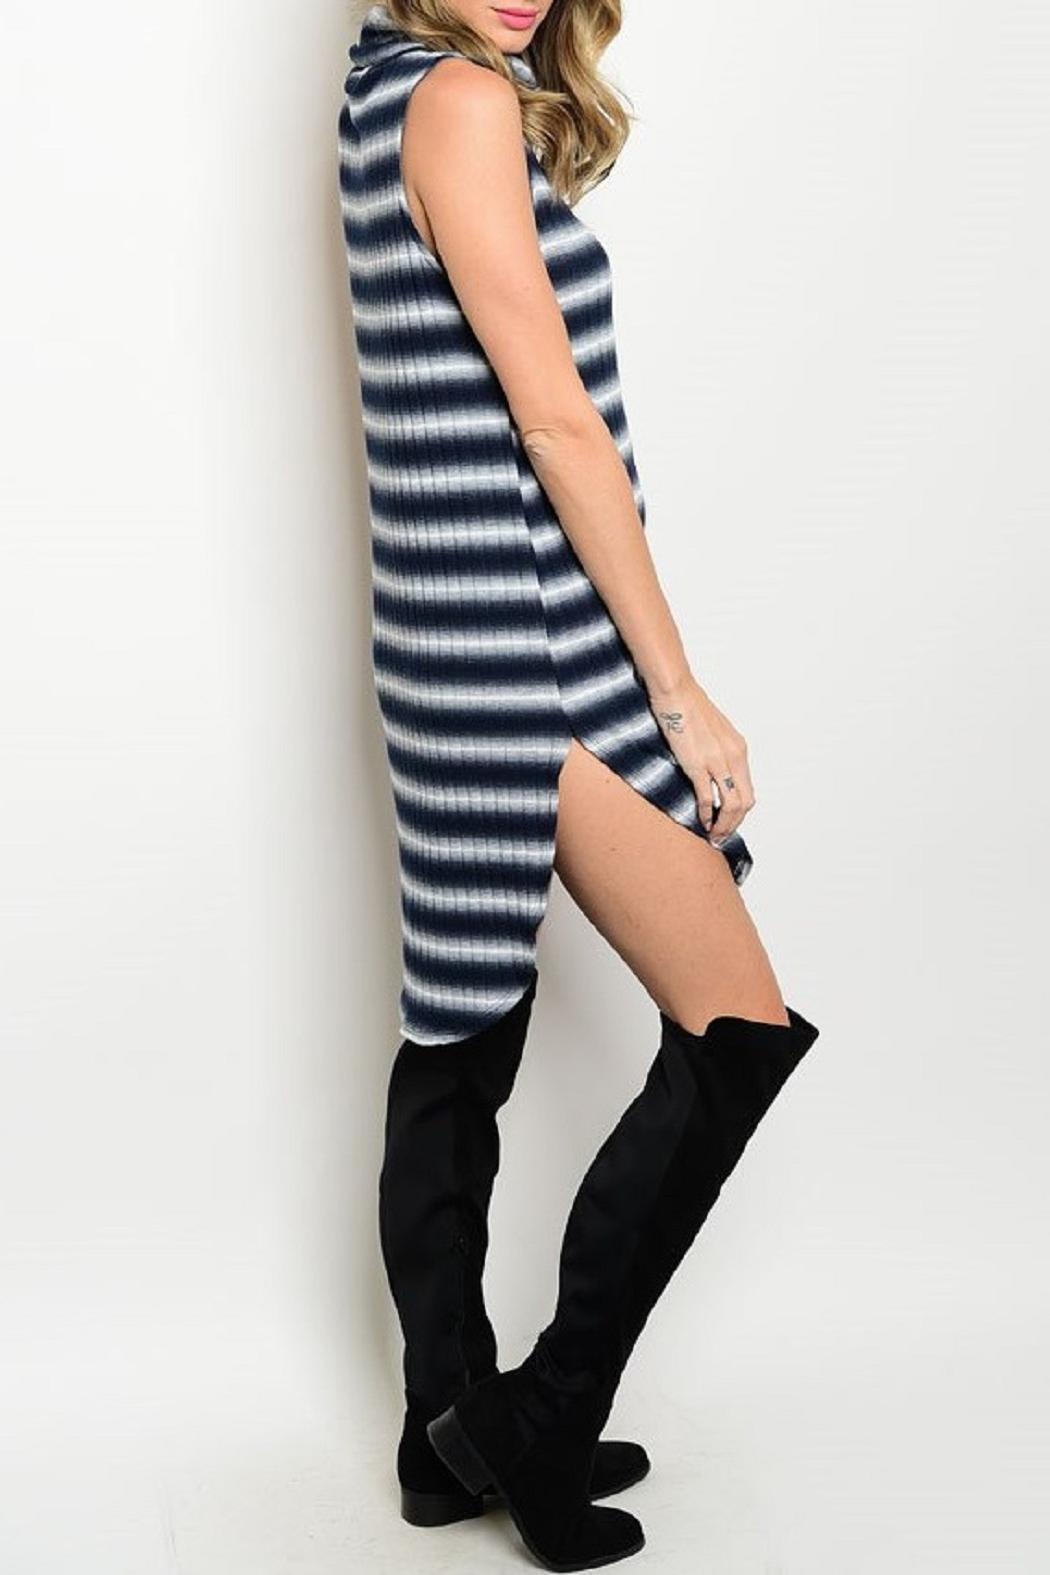 Adore Clothes & More Navy White Striped Dress - Front Full Image